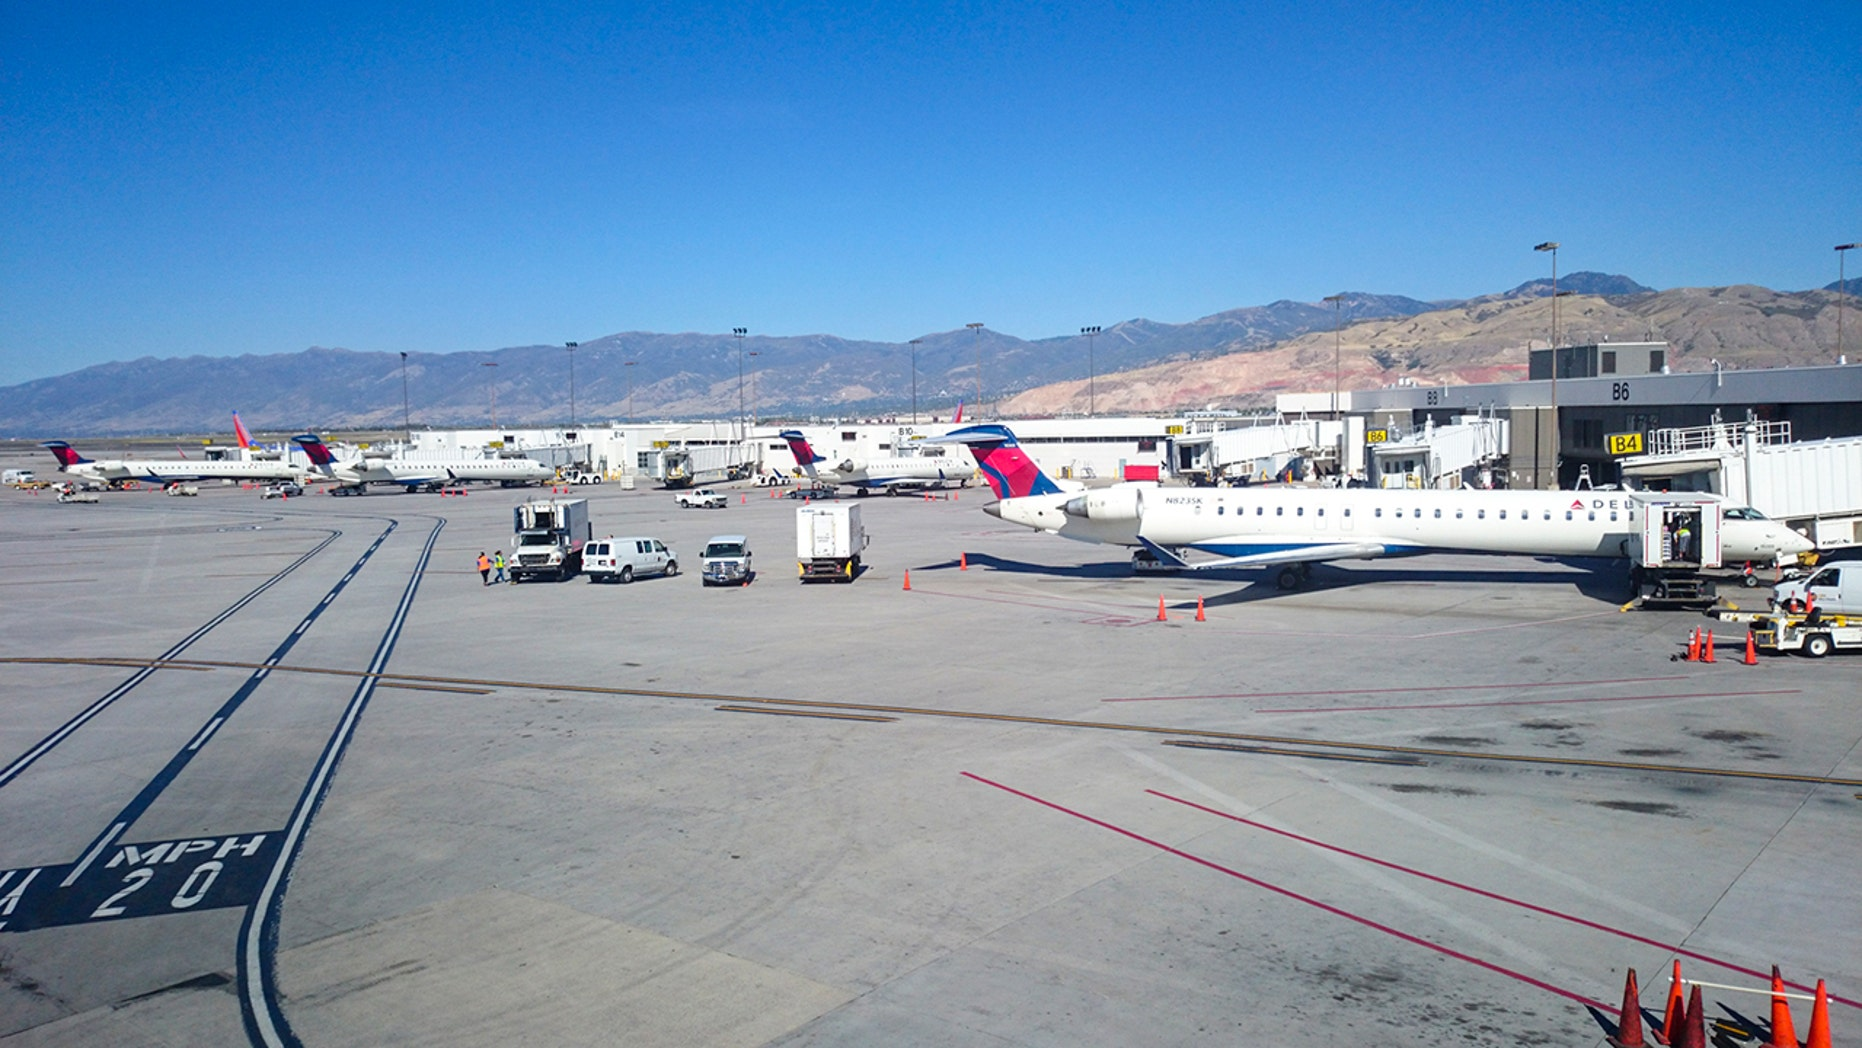 The 16-year-old was reportedly running from police the day before, evading capture by jumping over a fence at the airport.